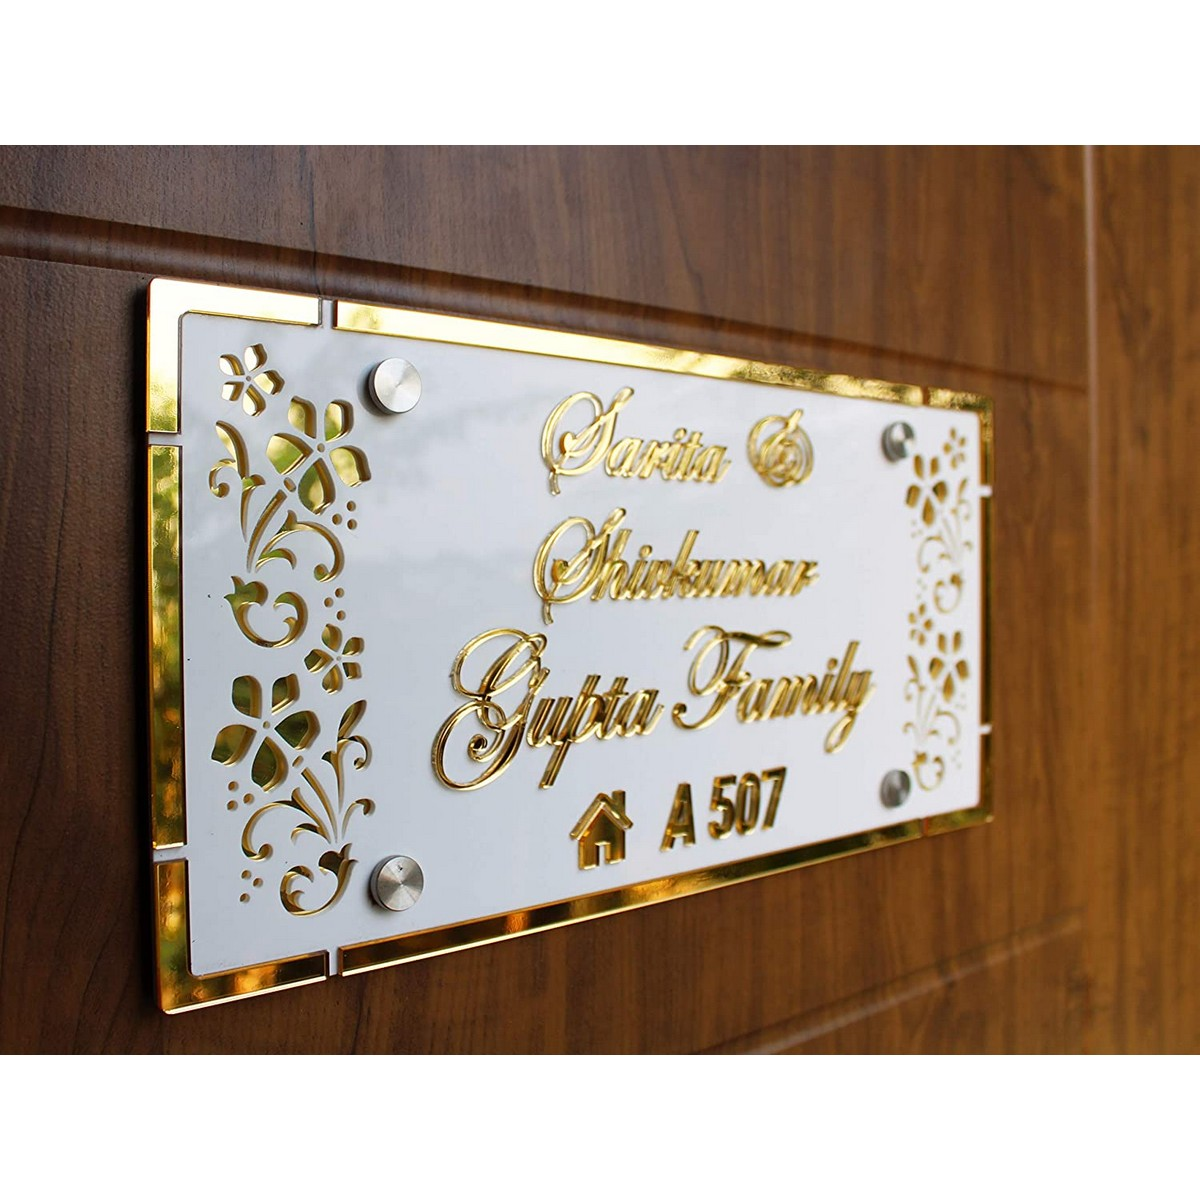 Golden Acrylic Embossed Letters Customized House Name Plate  Golden Acrylic Embossed Letters House Name Plate 3